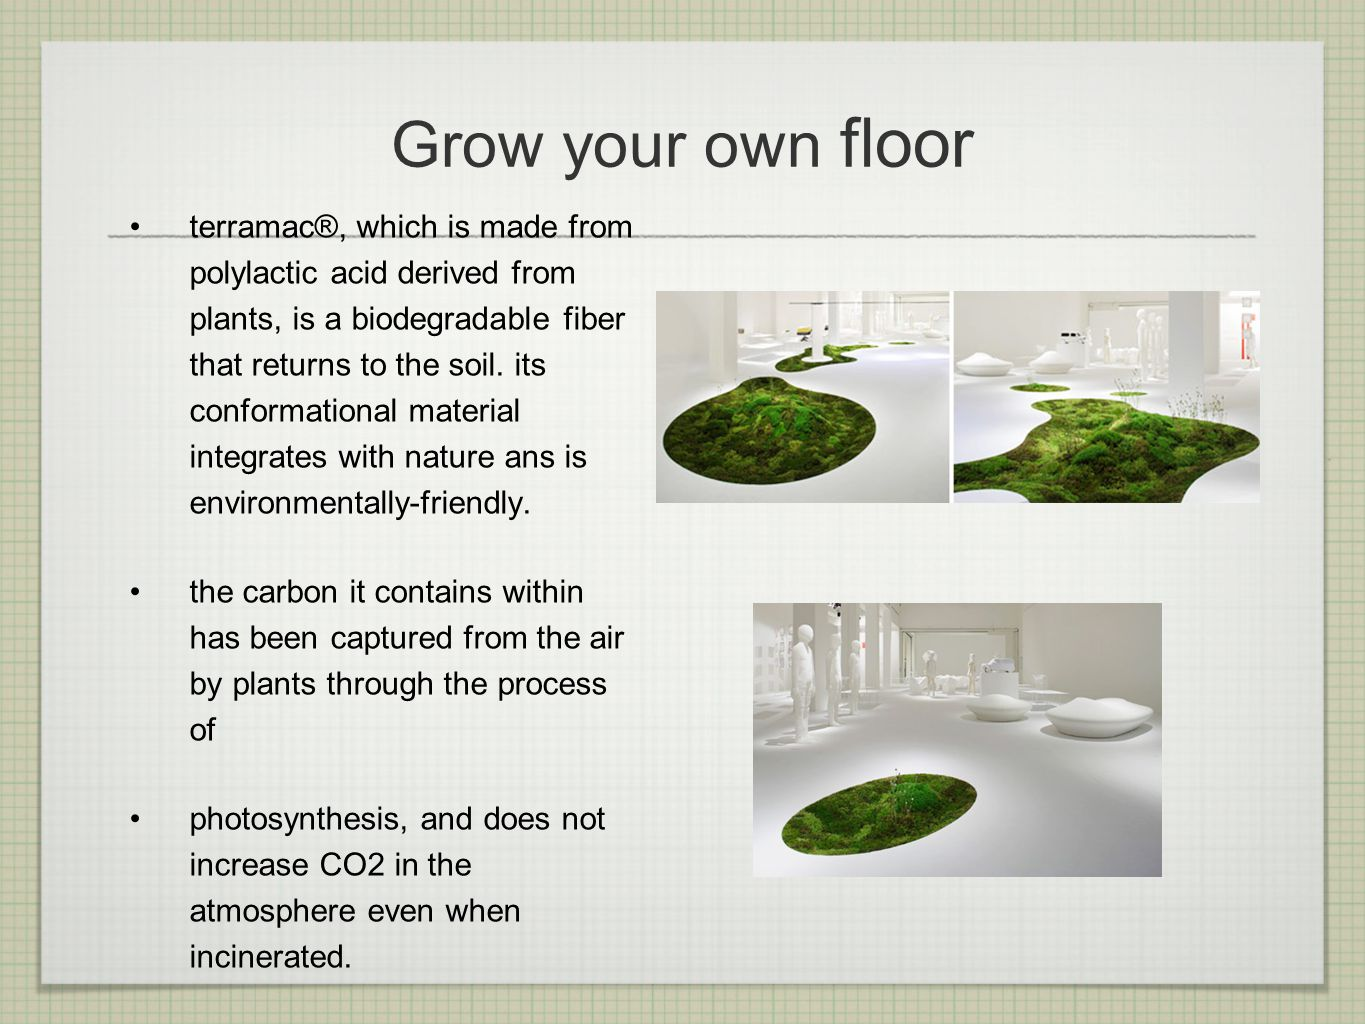 Grow your own floor terramac®, which is made from polylactic acid derived from plants, is a biodegradable fiber that returns to the soil.